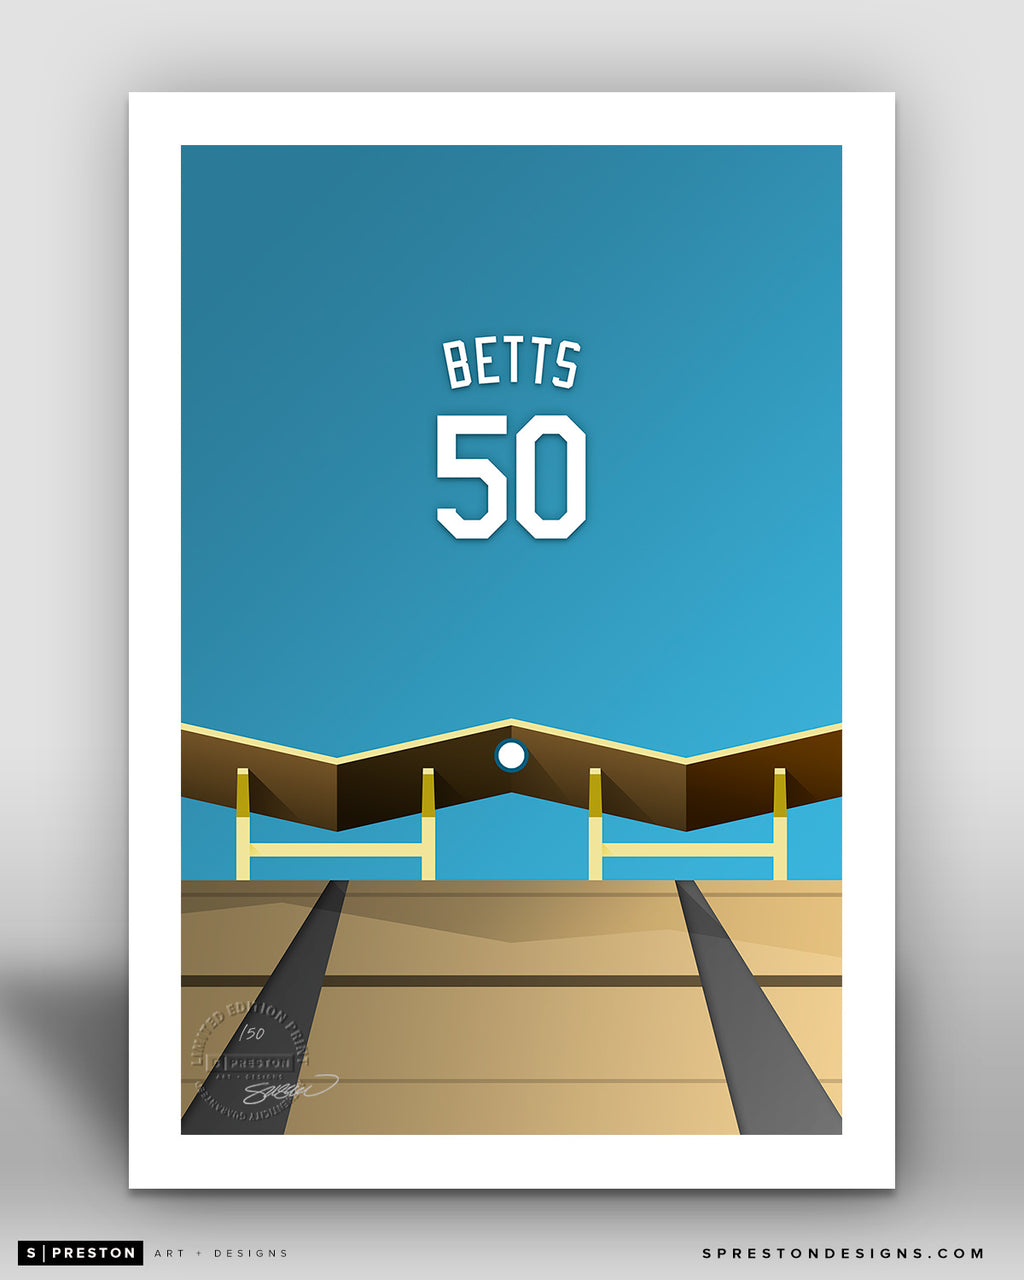 Minimalist Dodger Stadium - Player Series - Mookie Betts - Los Angeles Dodgers - S. Preston